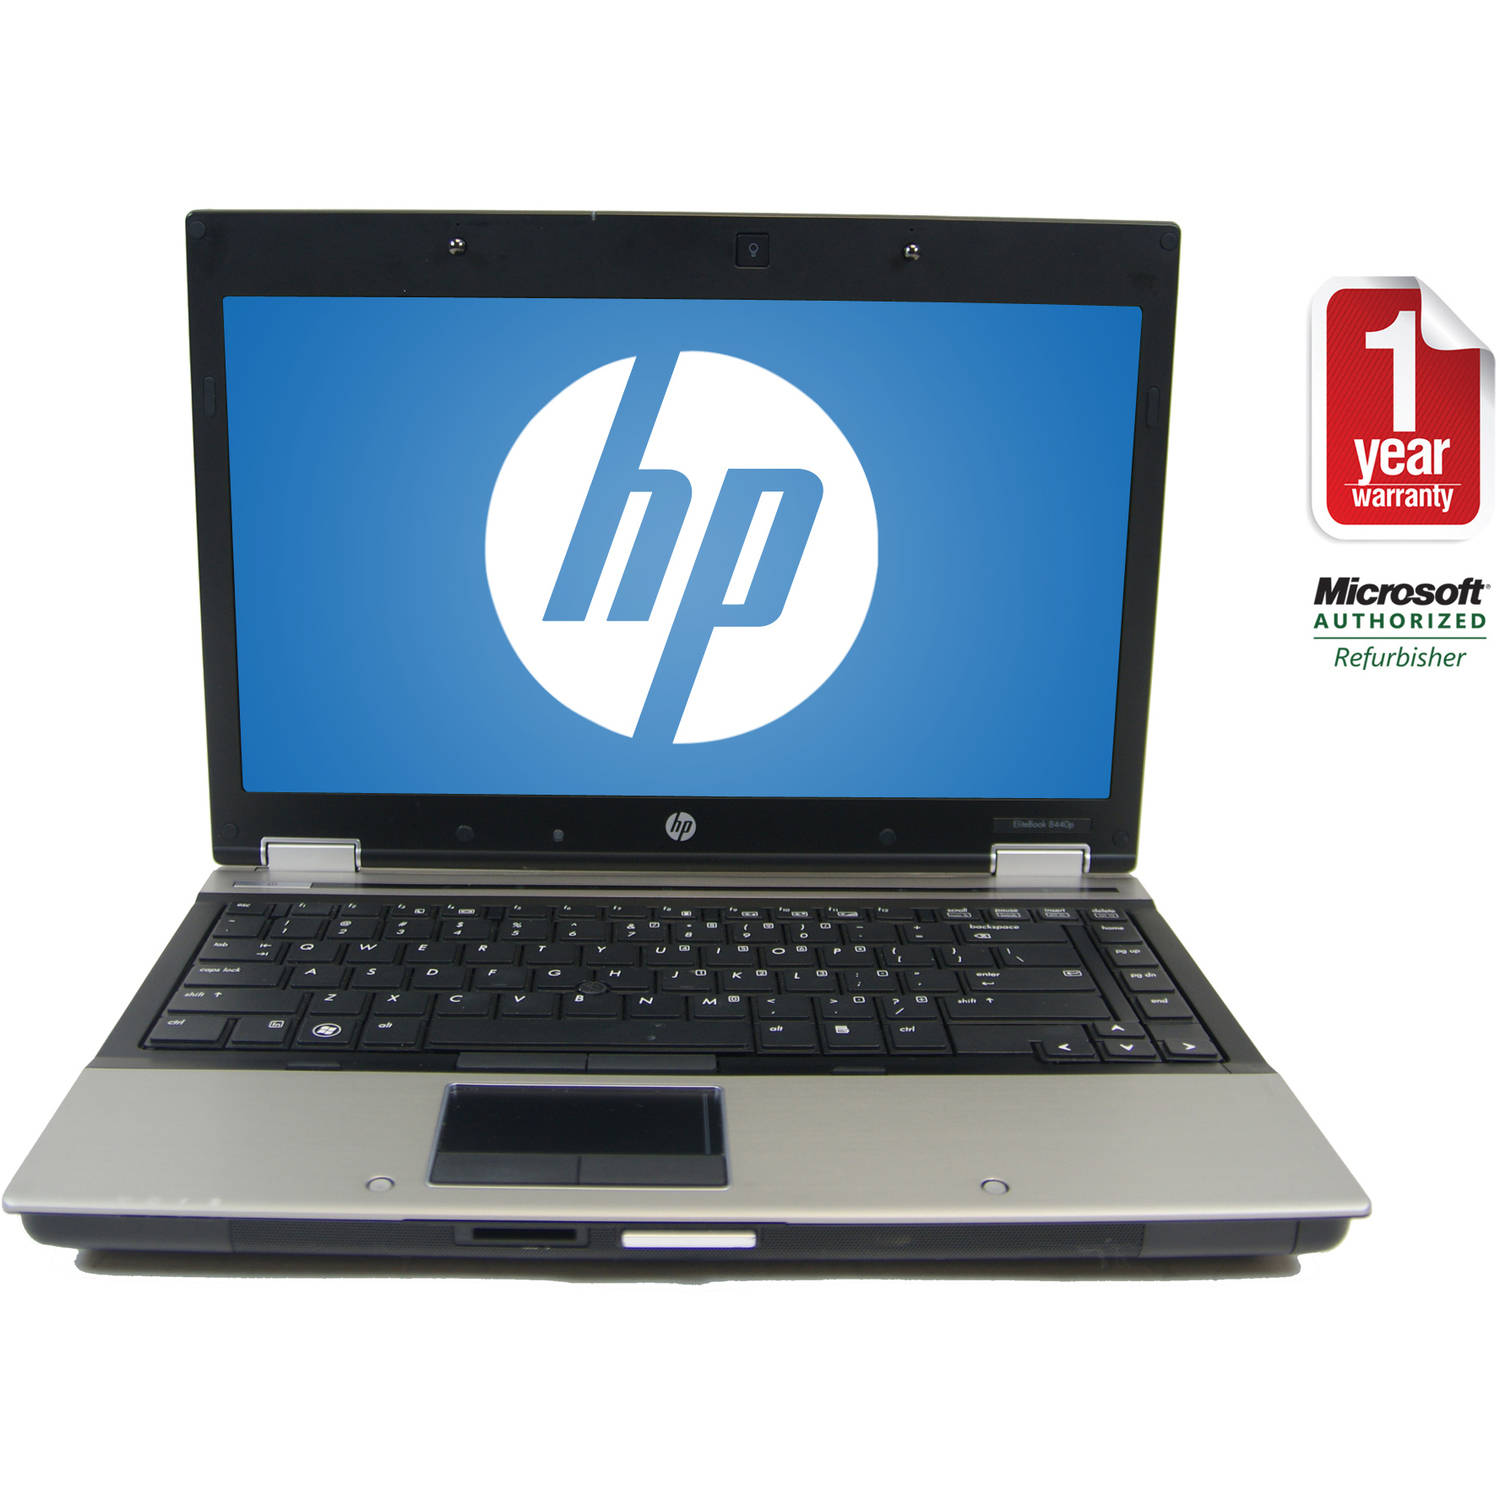 "Refurbished HP Black 14.1"" 8440P Laptop PC with Intel Core i5-520M Processor, 6GB Memory, 320GB Hard Drive and Windows 7 Home Premium"